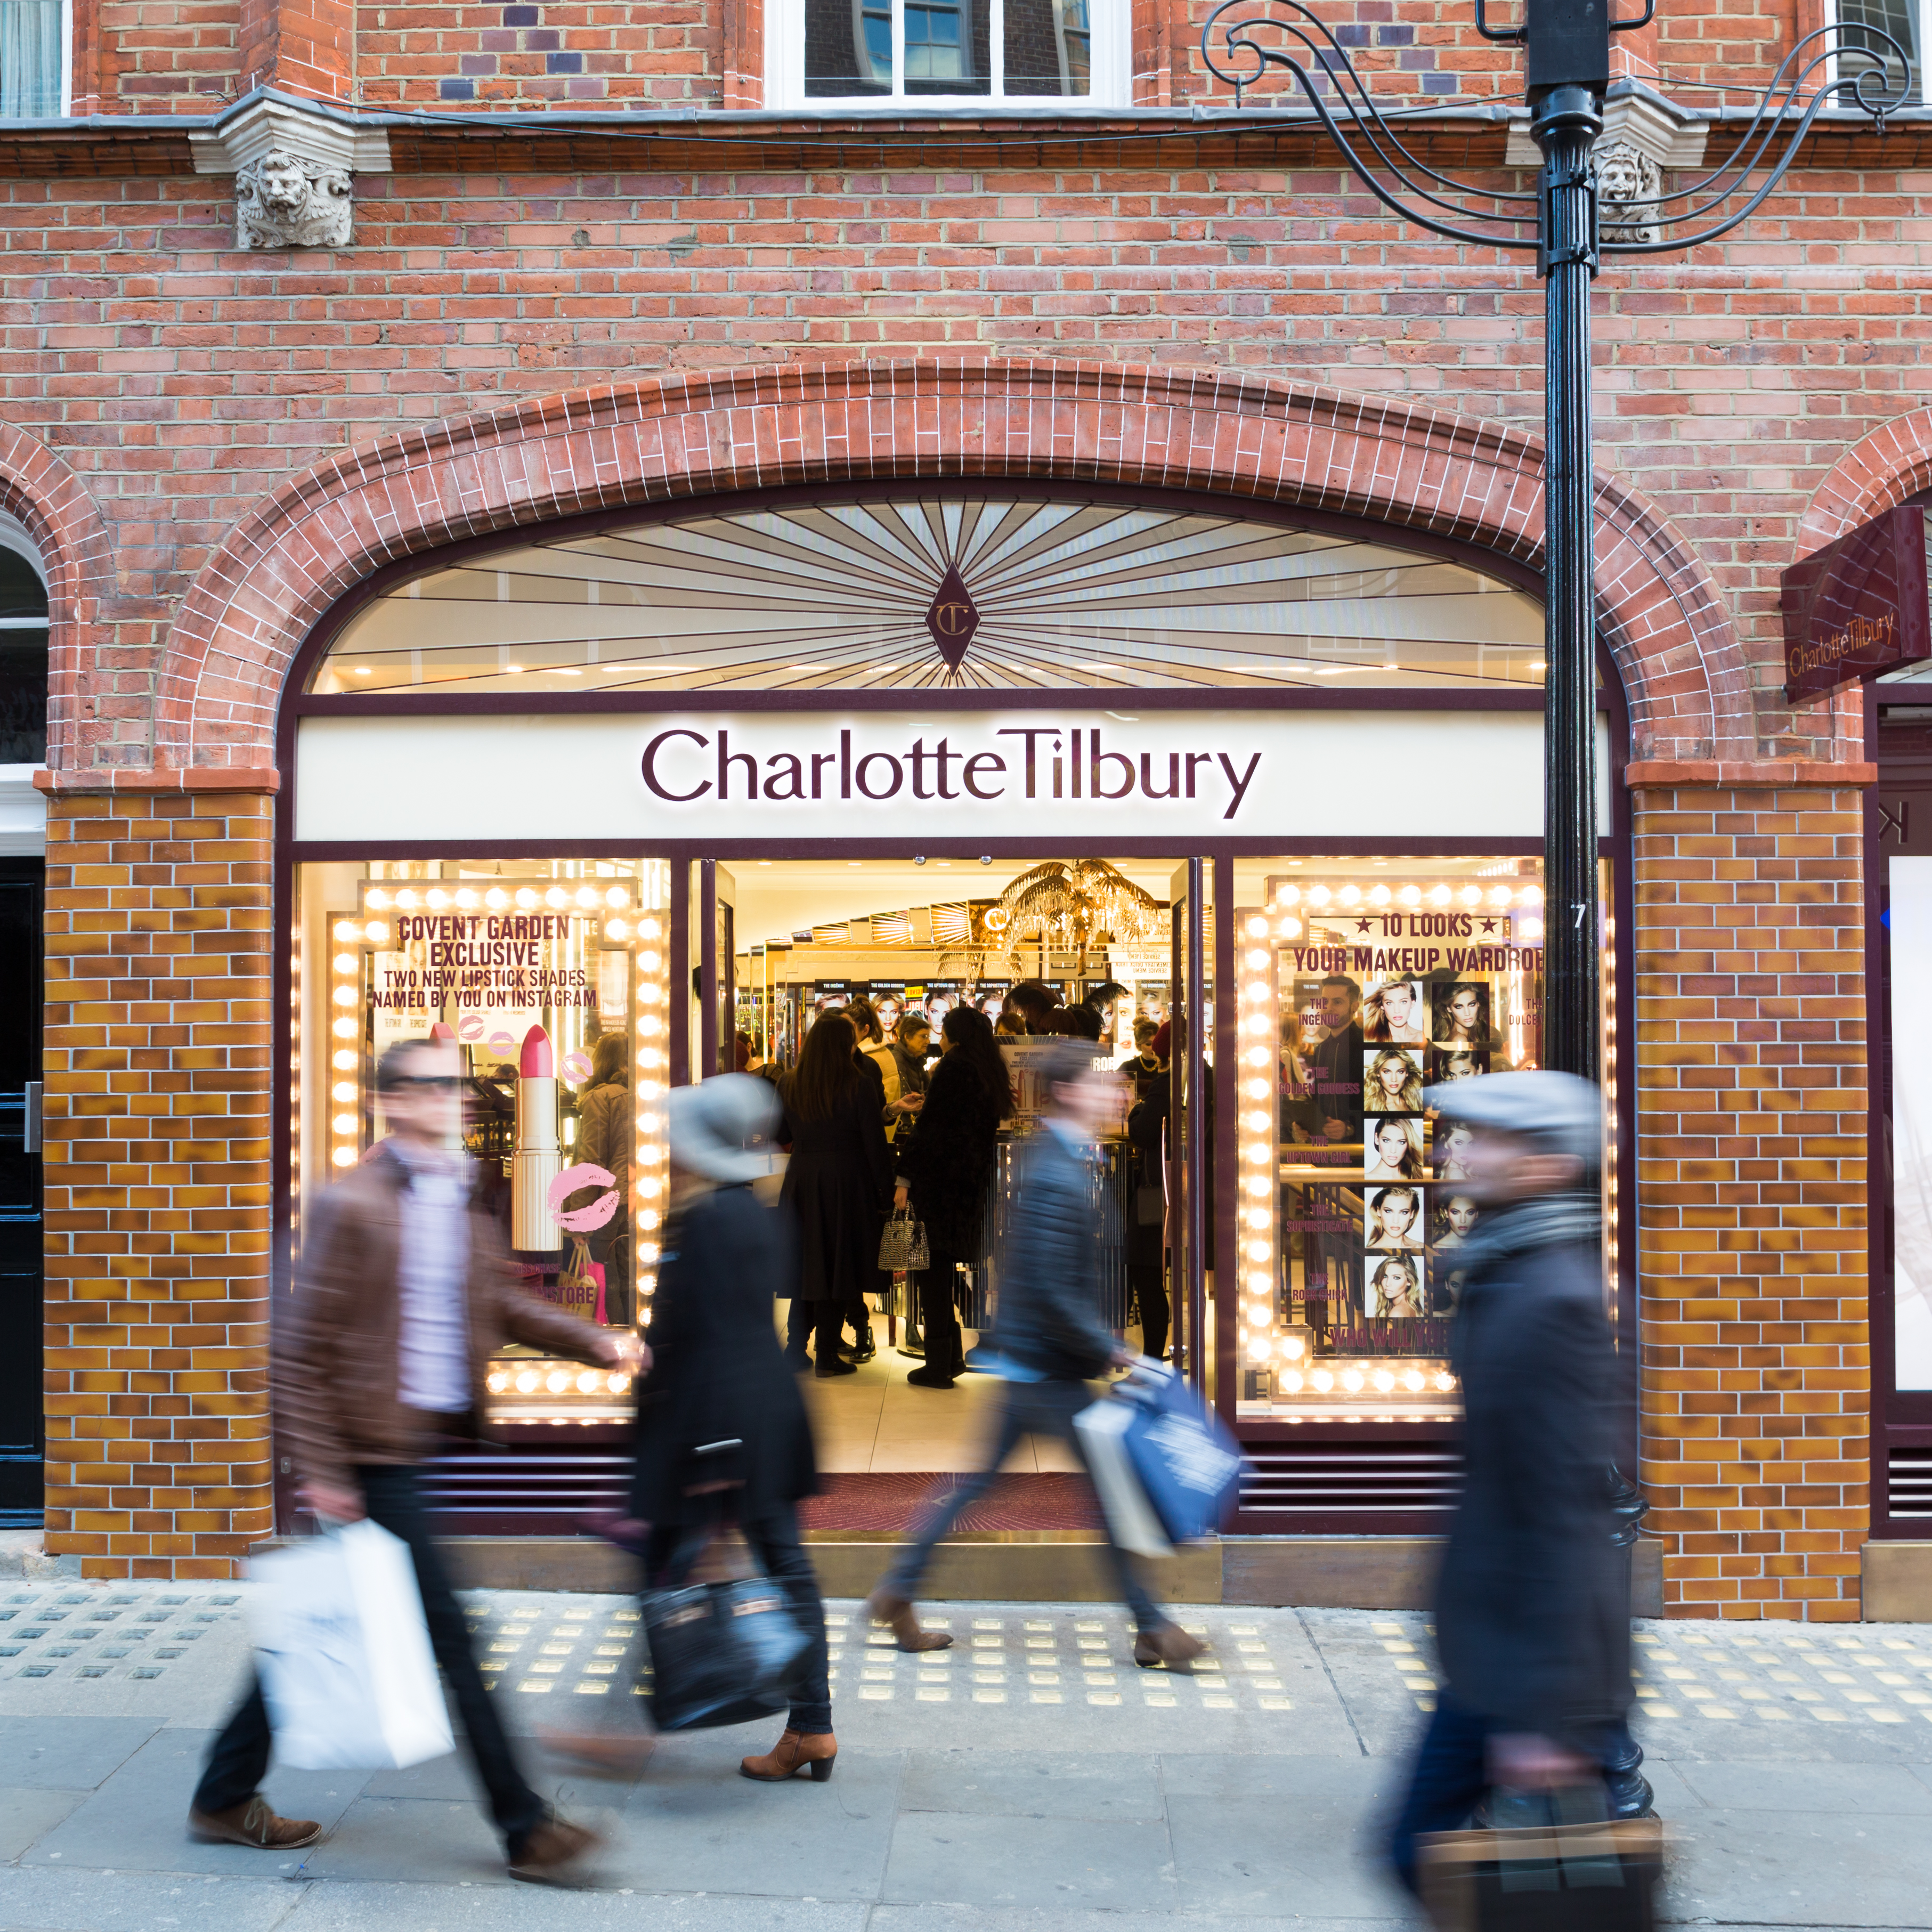 The Charlotte Tilbury store in Covent Garden